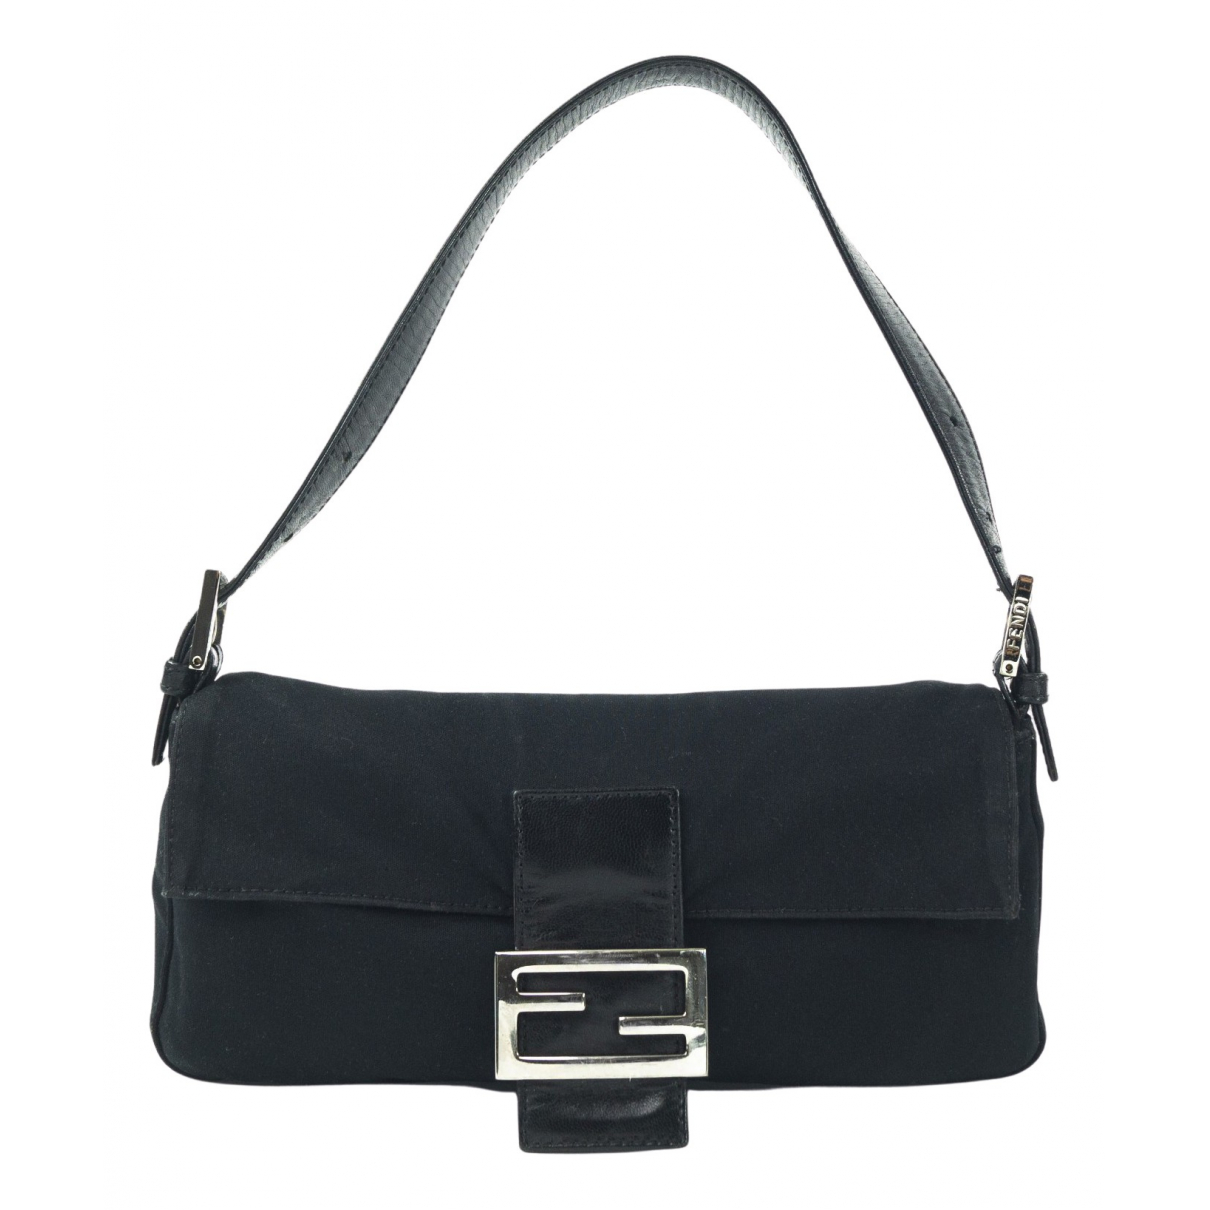 Fendi Baguette Black Cloth handbag for Women N